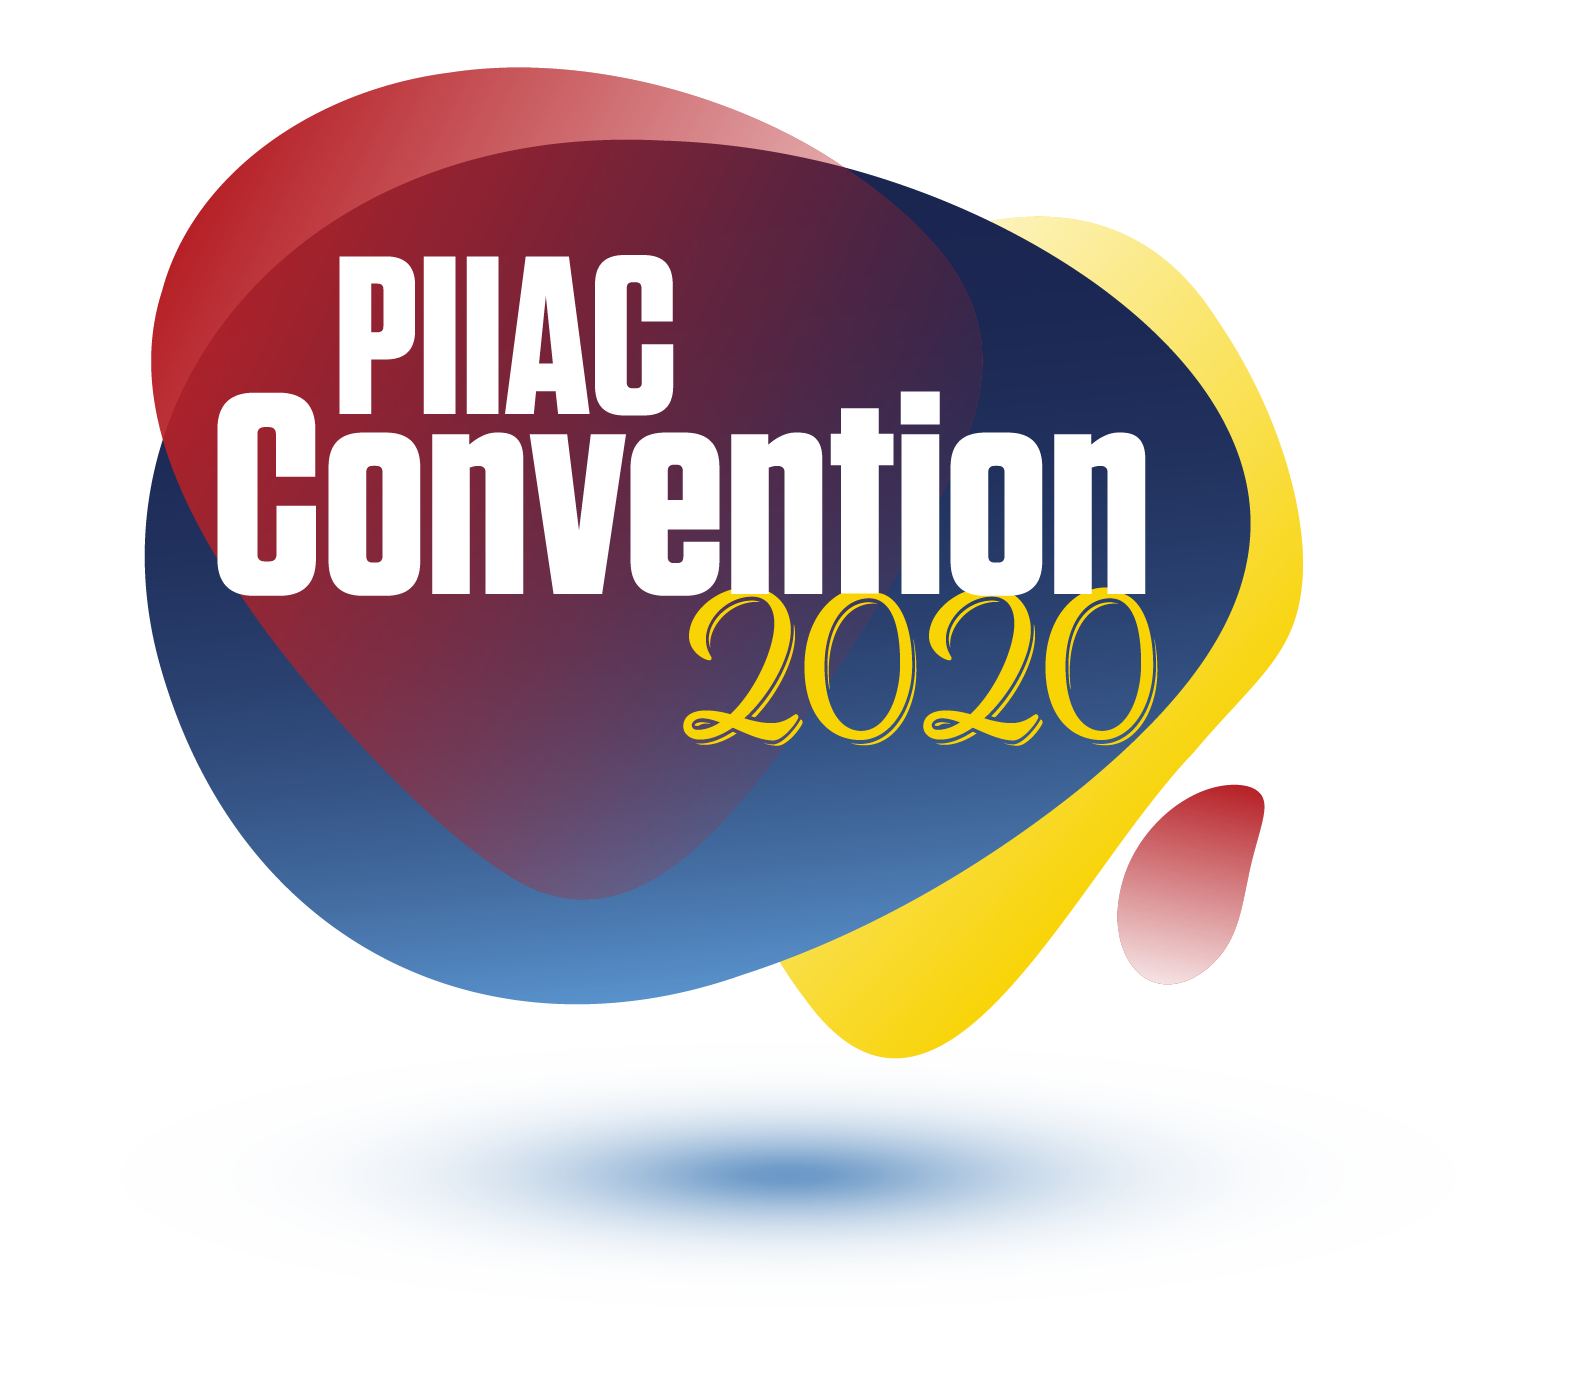 PIIAC 2020 Convention graphic